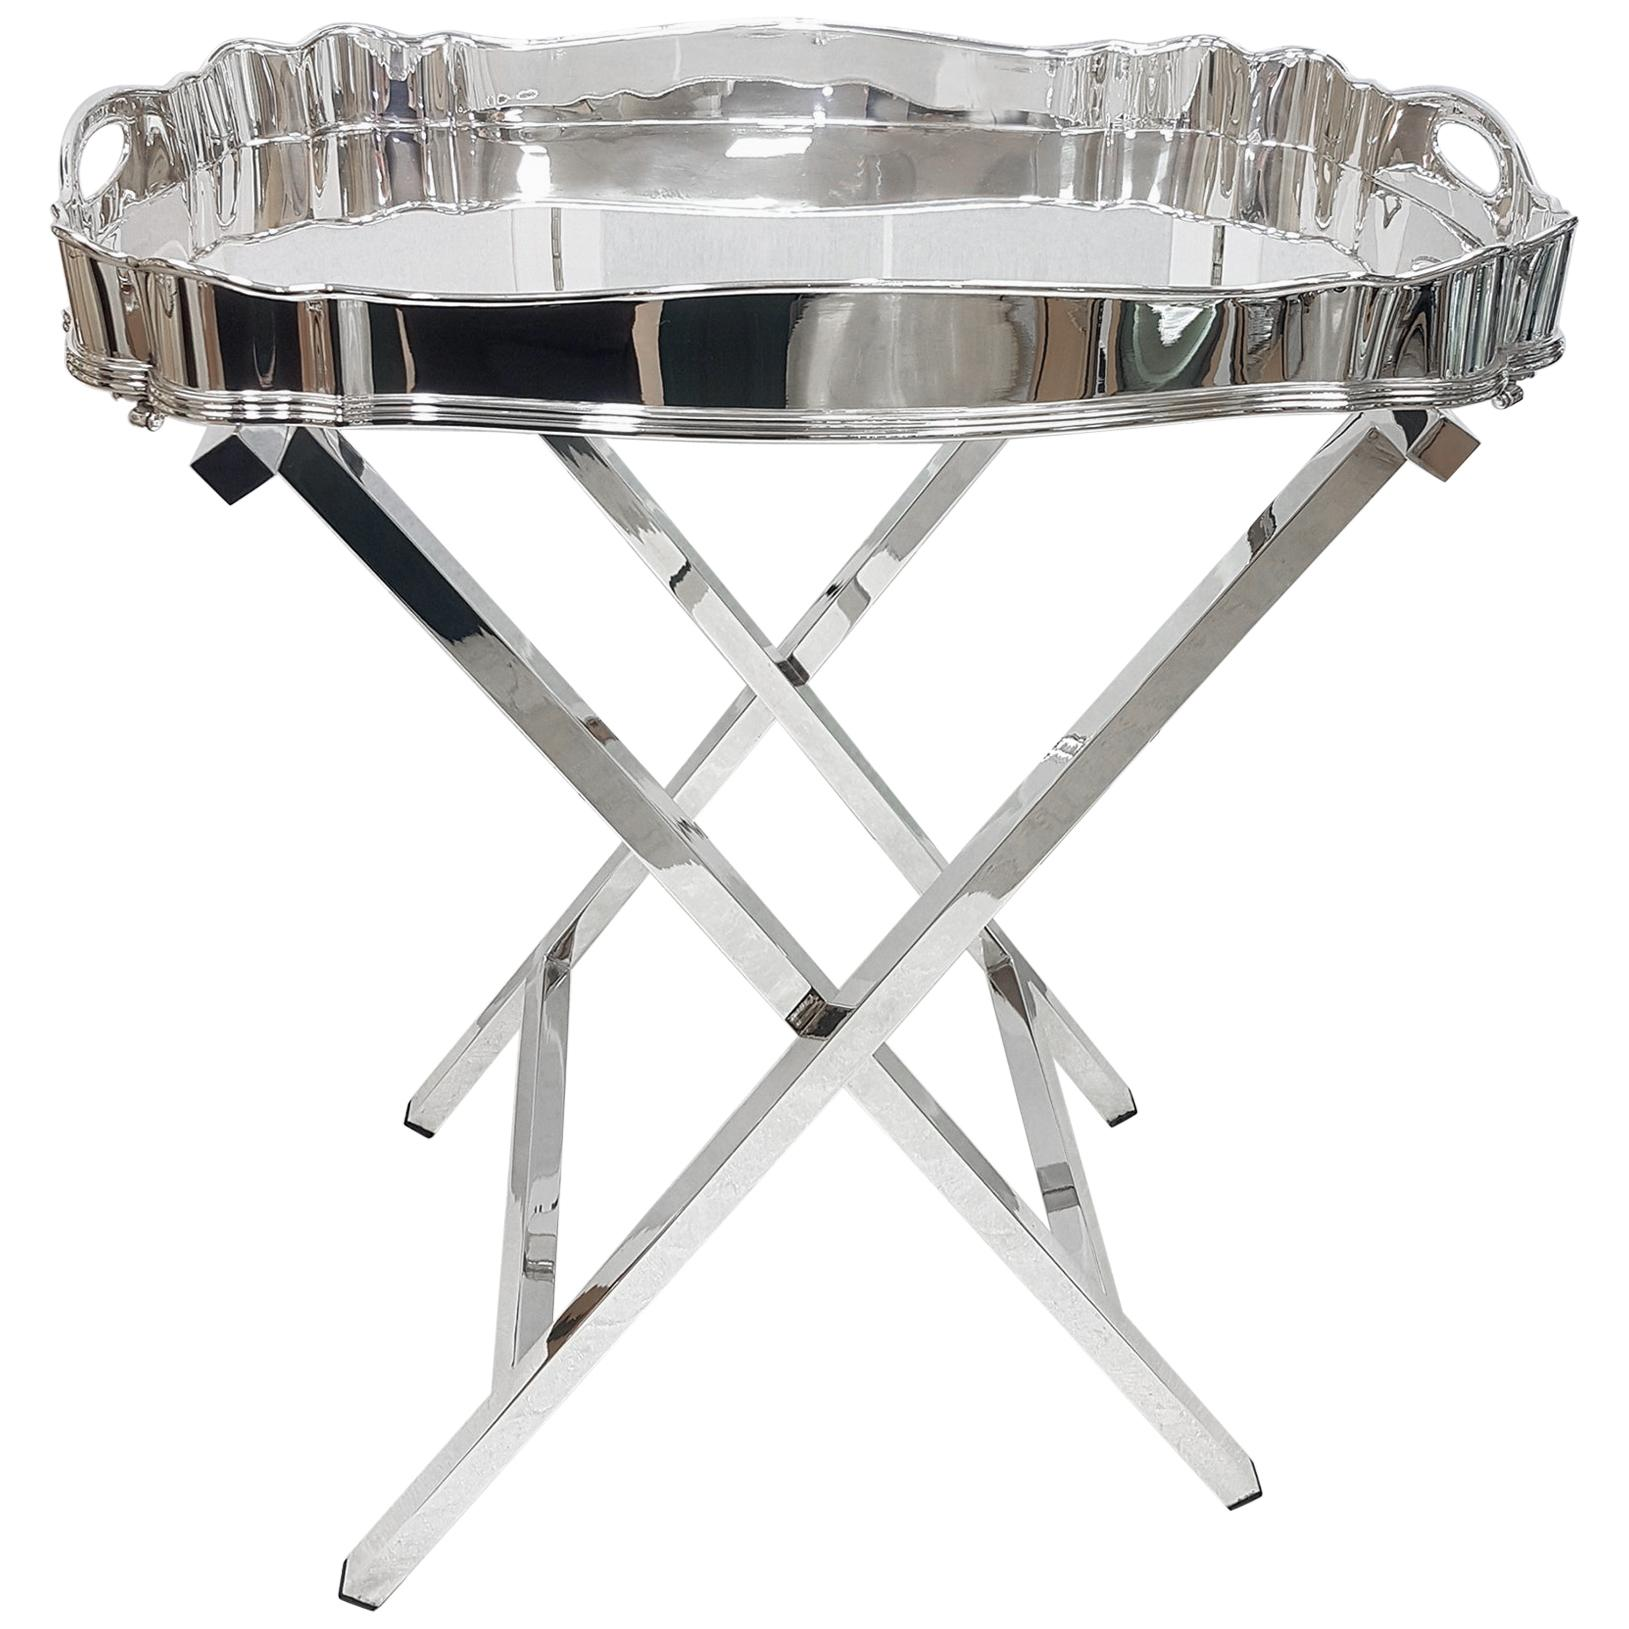 20th Century Italian Solid Silver Gallery Tray on Silver Stand